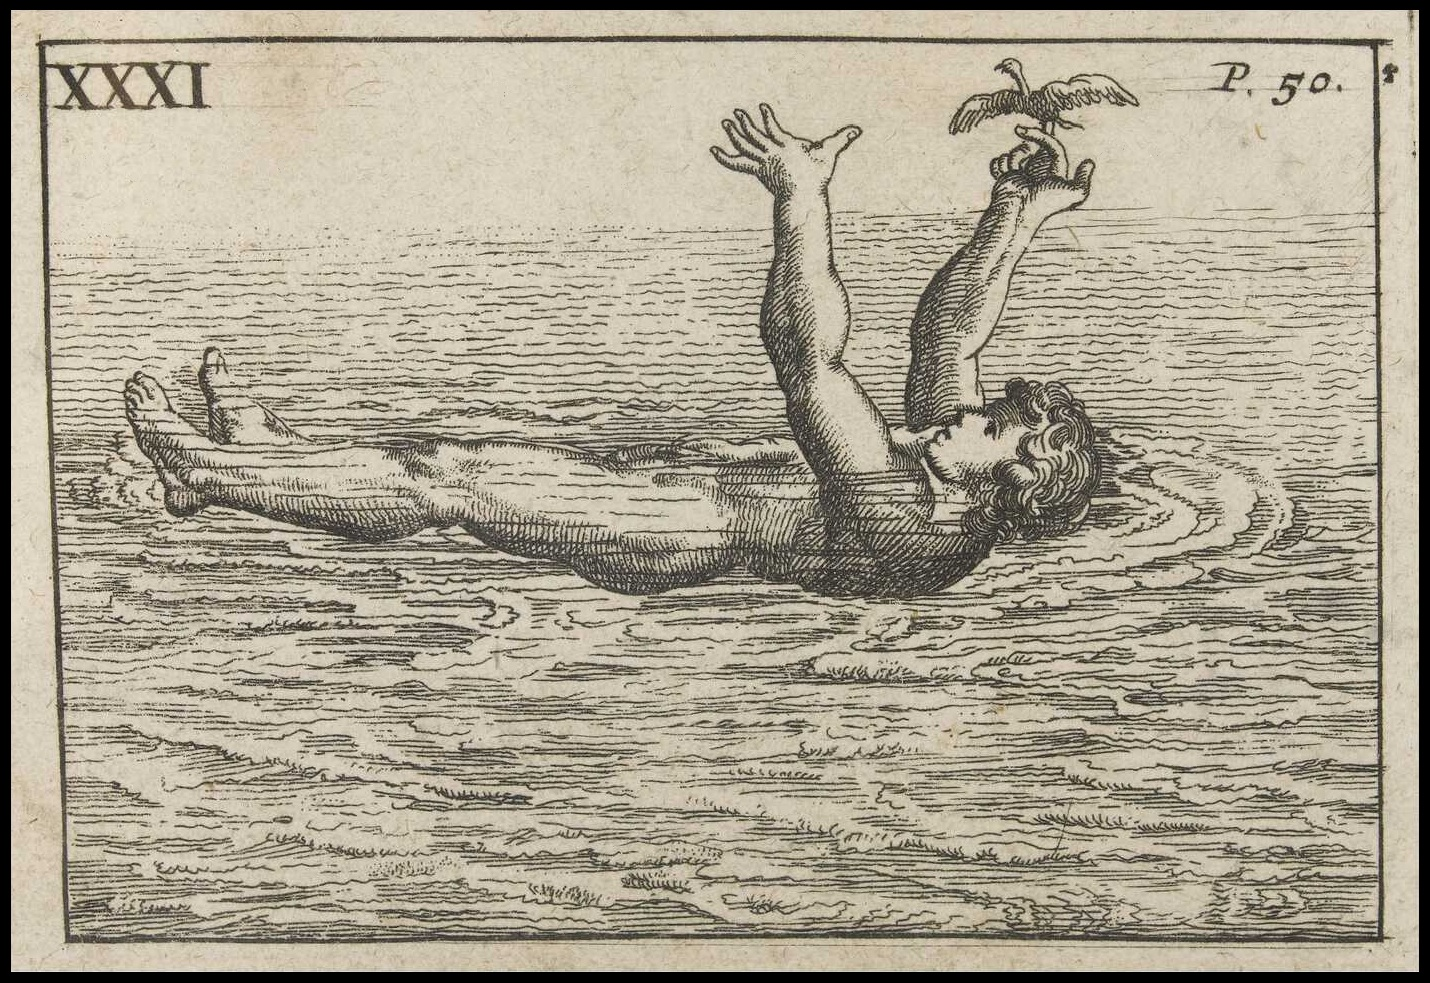 book illustration of weird swimming technique